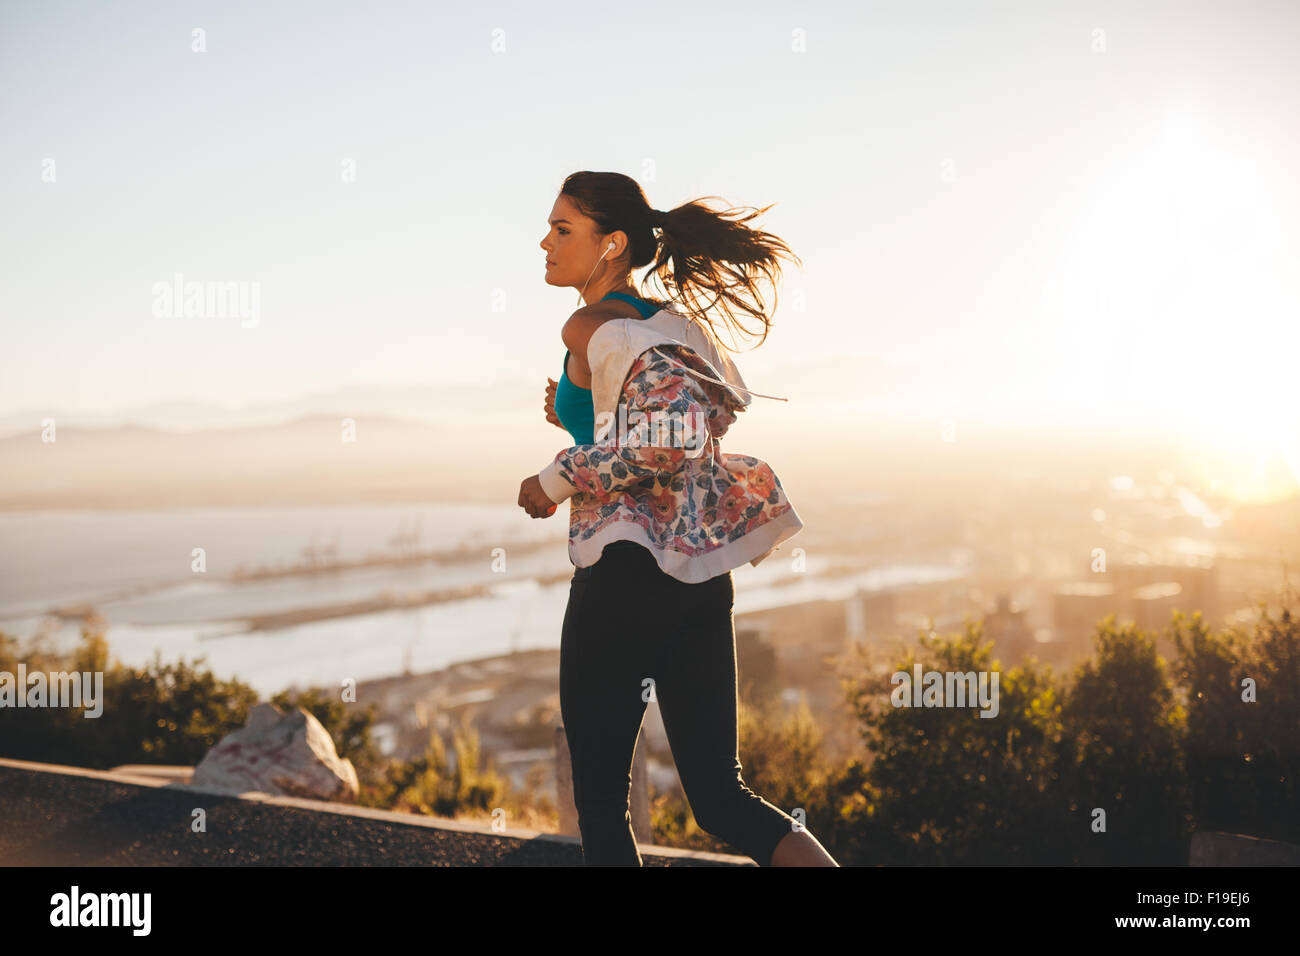 Outdoor shot of a young woman on her morning run. Fitness woman running on country road. - Stock Image